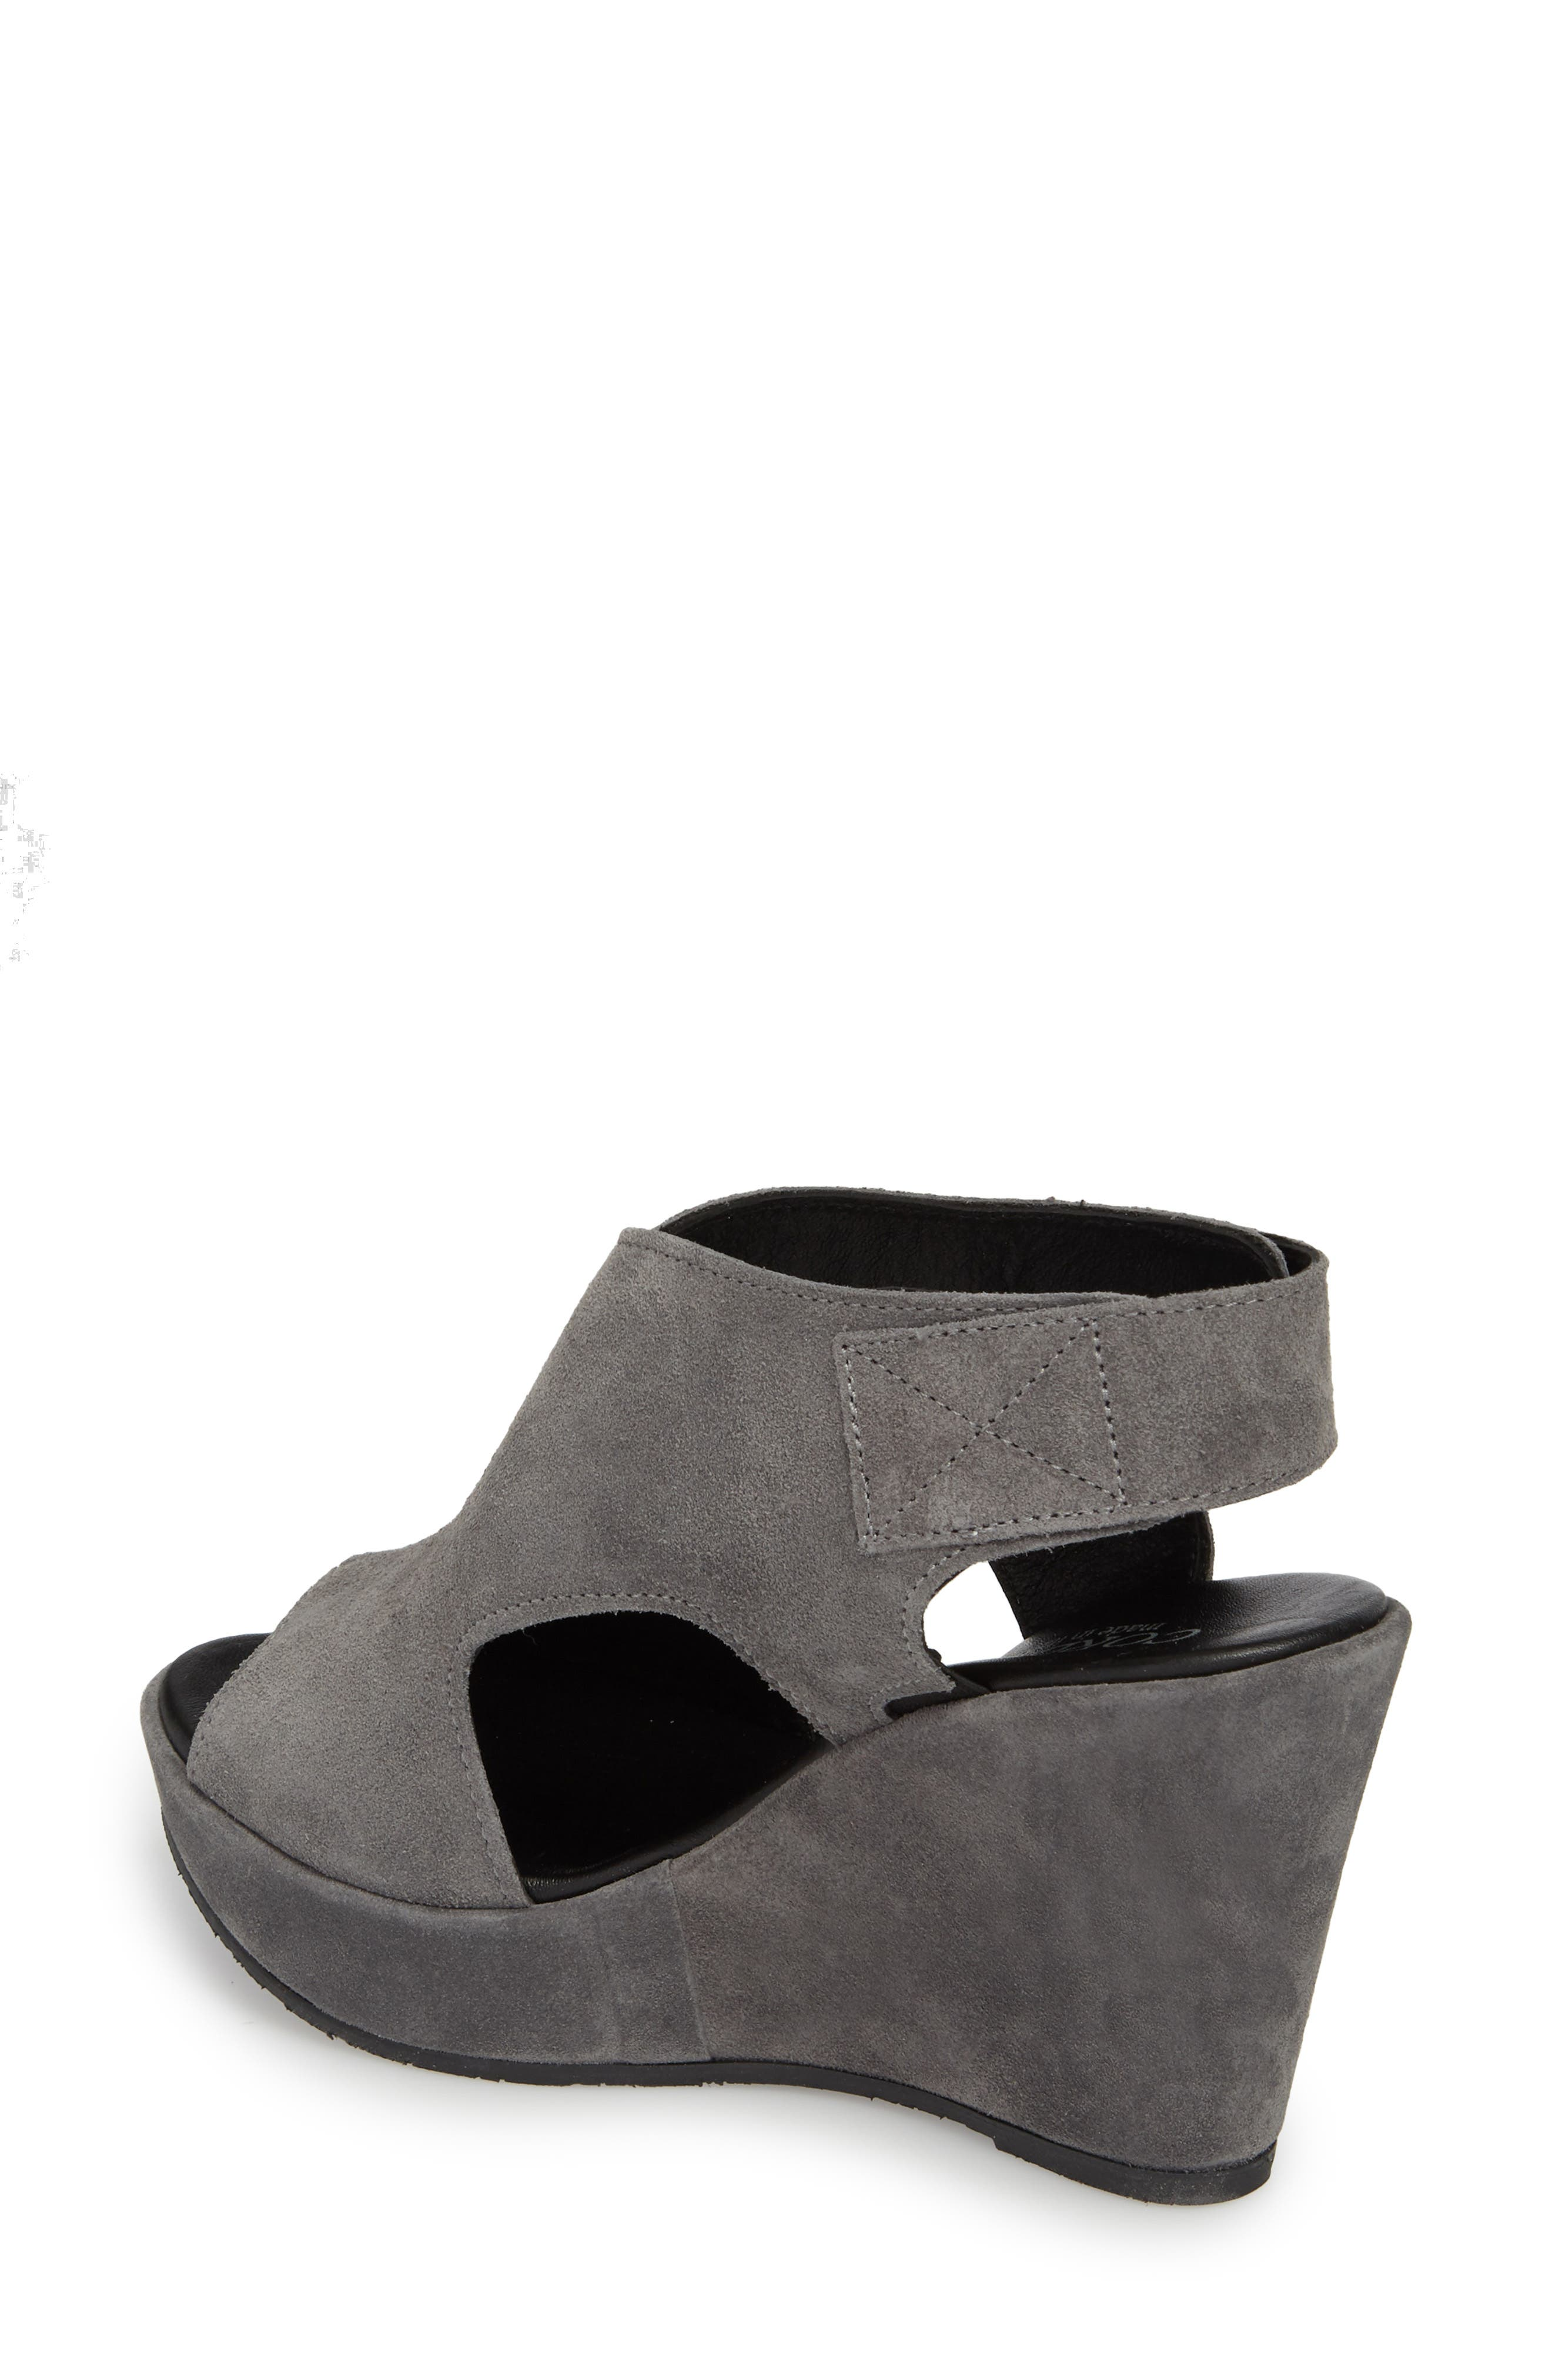 Reed Wedge Sandal,                             Alternate thumbnail 2, color,                             029